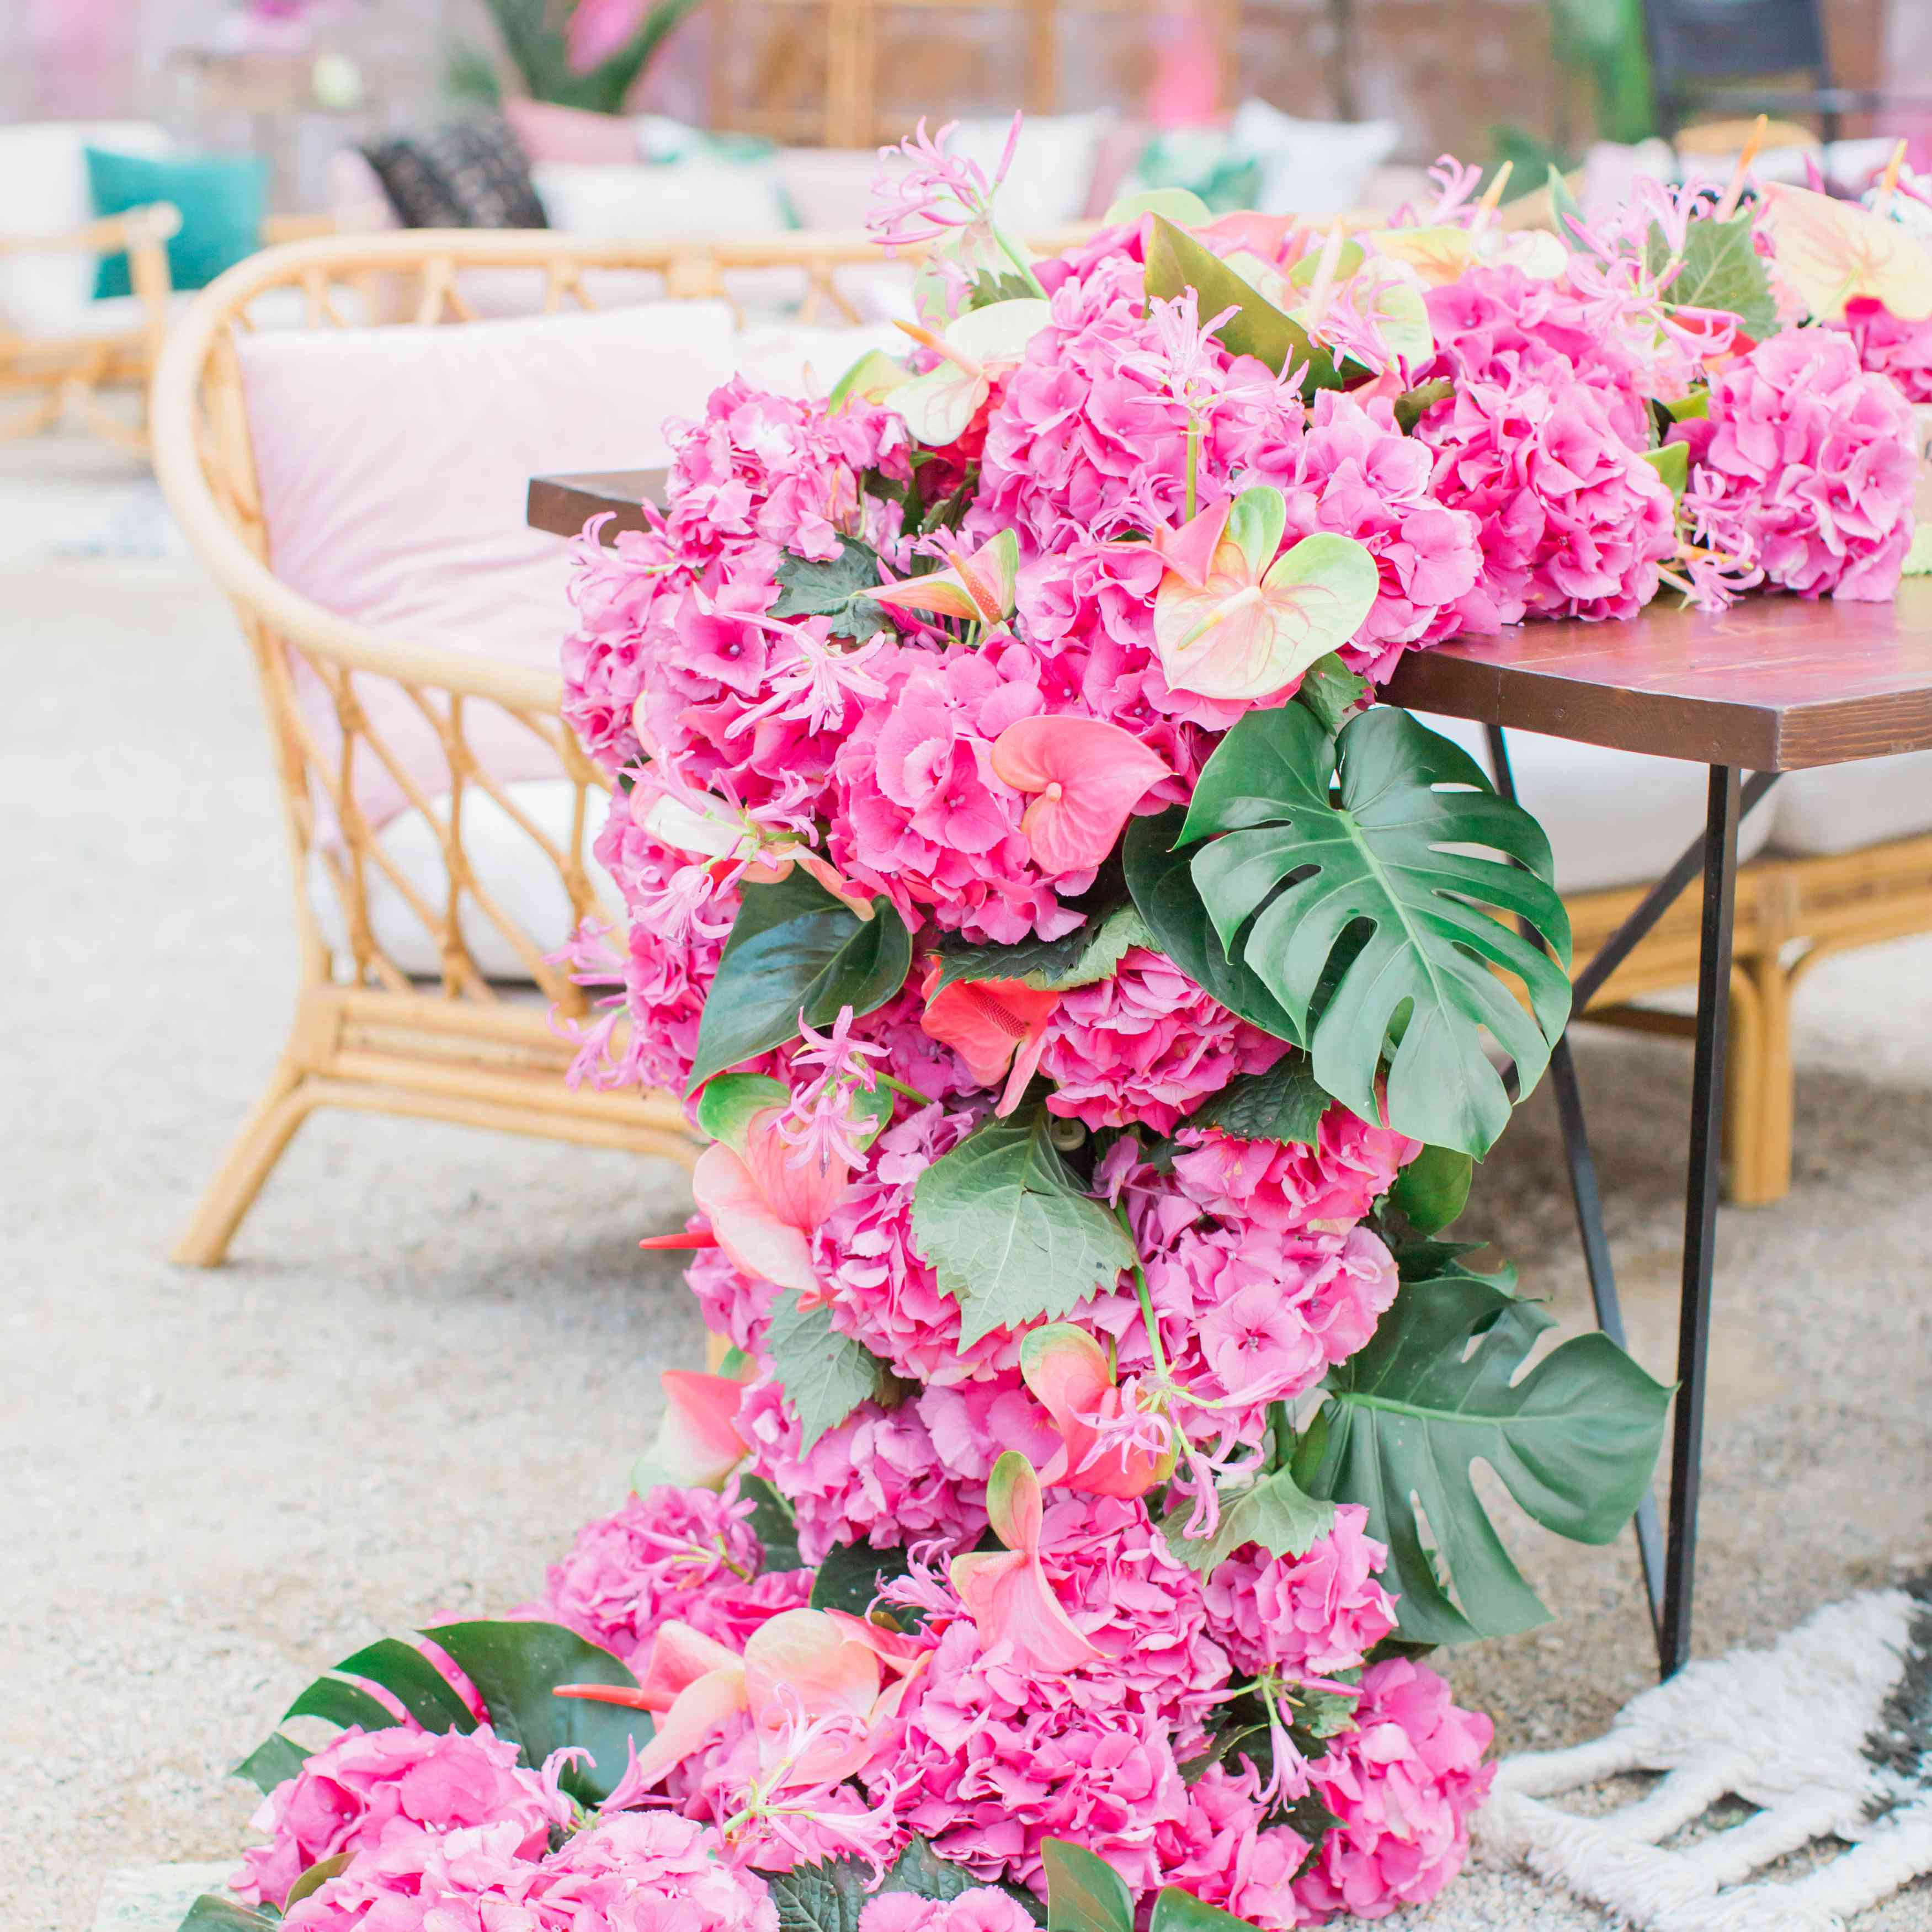 Floral garland of pink hydrangeas and palm fronds